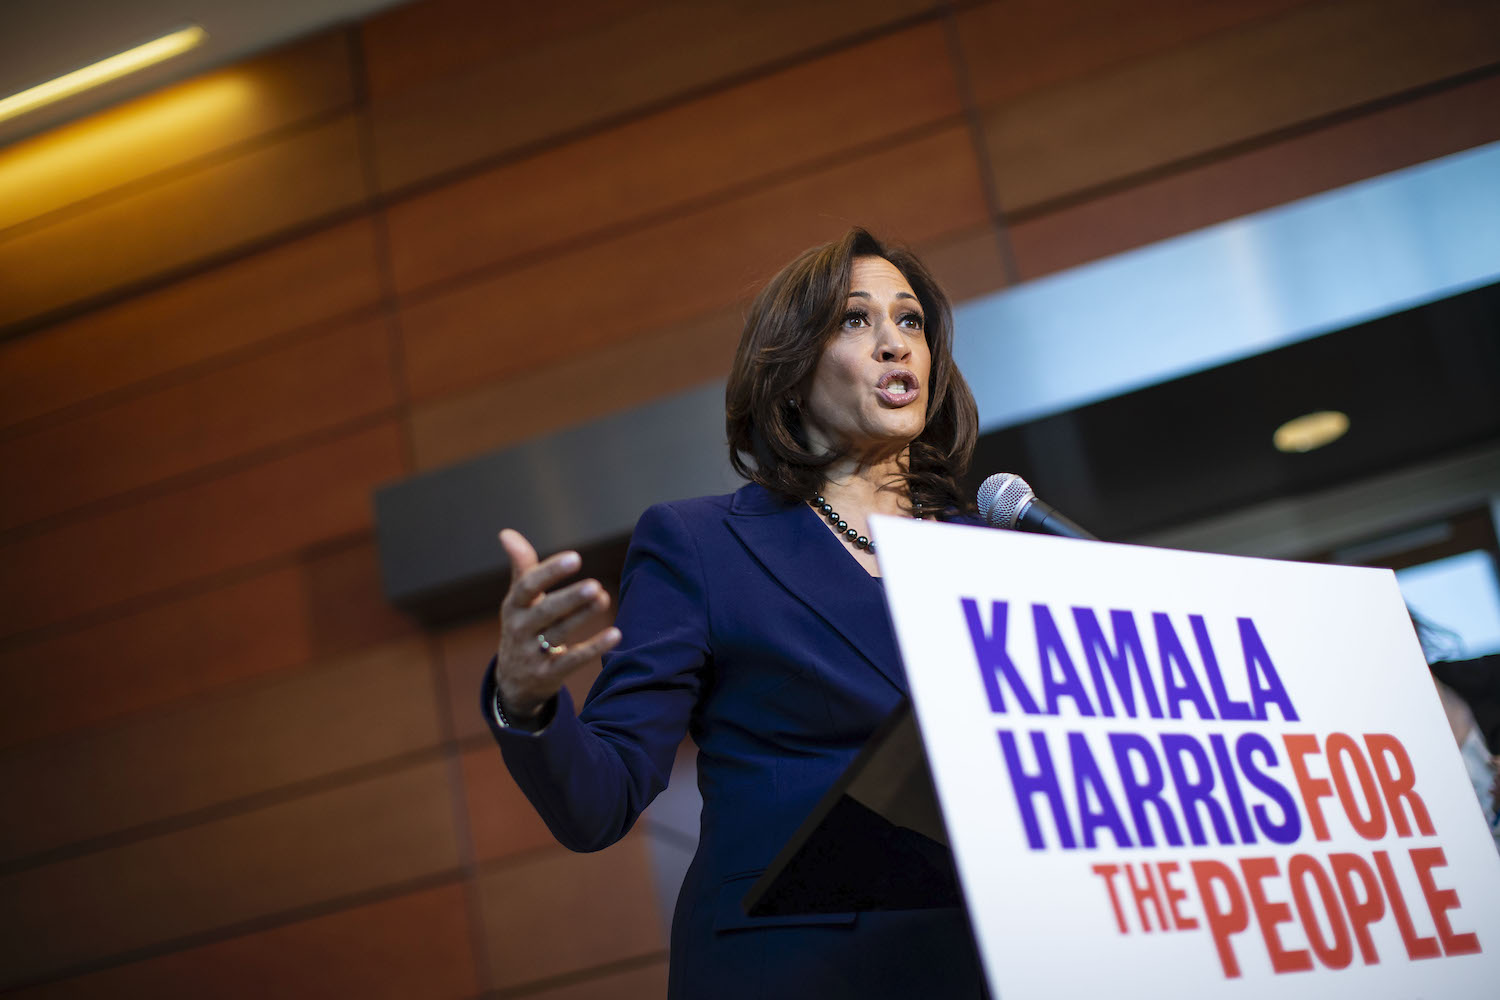 https://foreignpolicy.com/wp-content/uploads/2020/08/GettyImages-kamala-harris-biden-vice-president-1085870882.jpg?w=1500